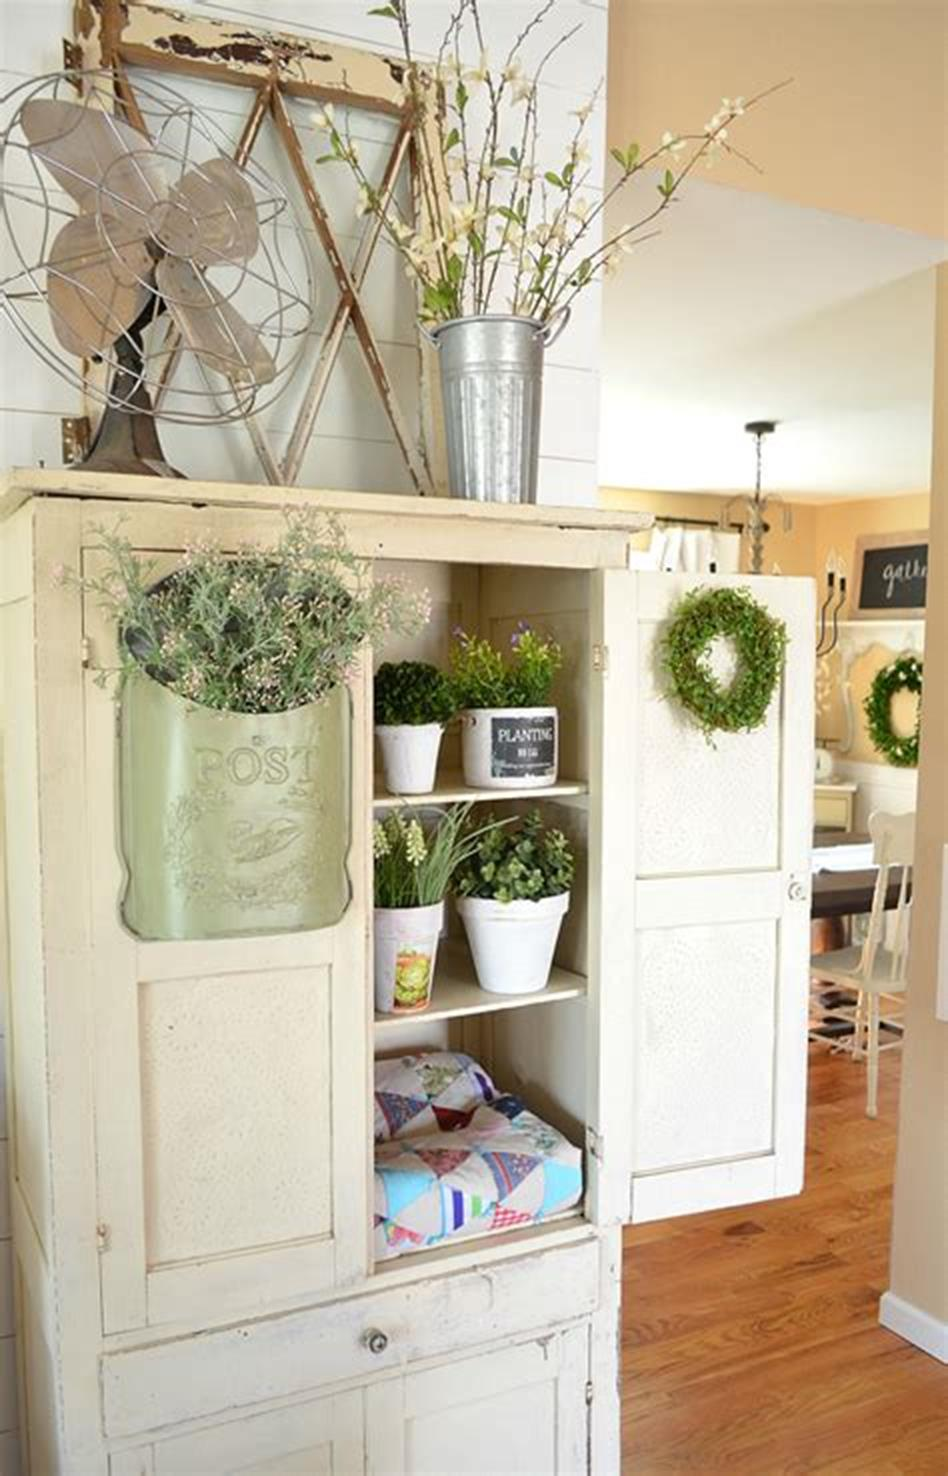 37 Beautiful Farmhouse Spring Decorating Ideas On a Budget for 2019 53